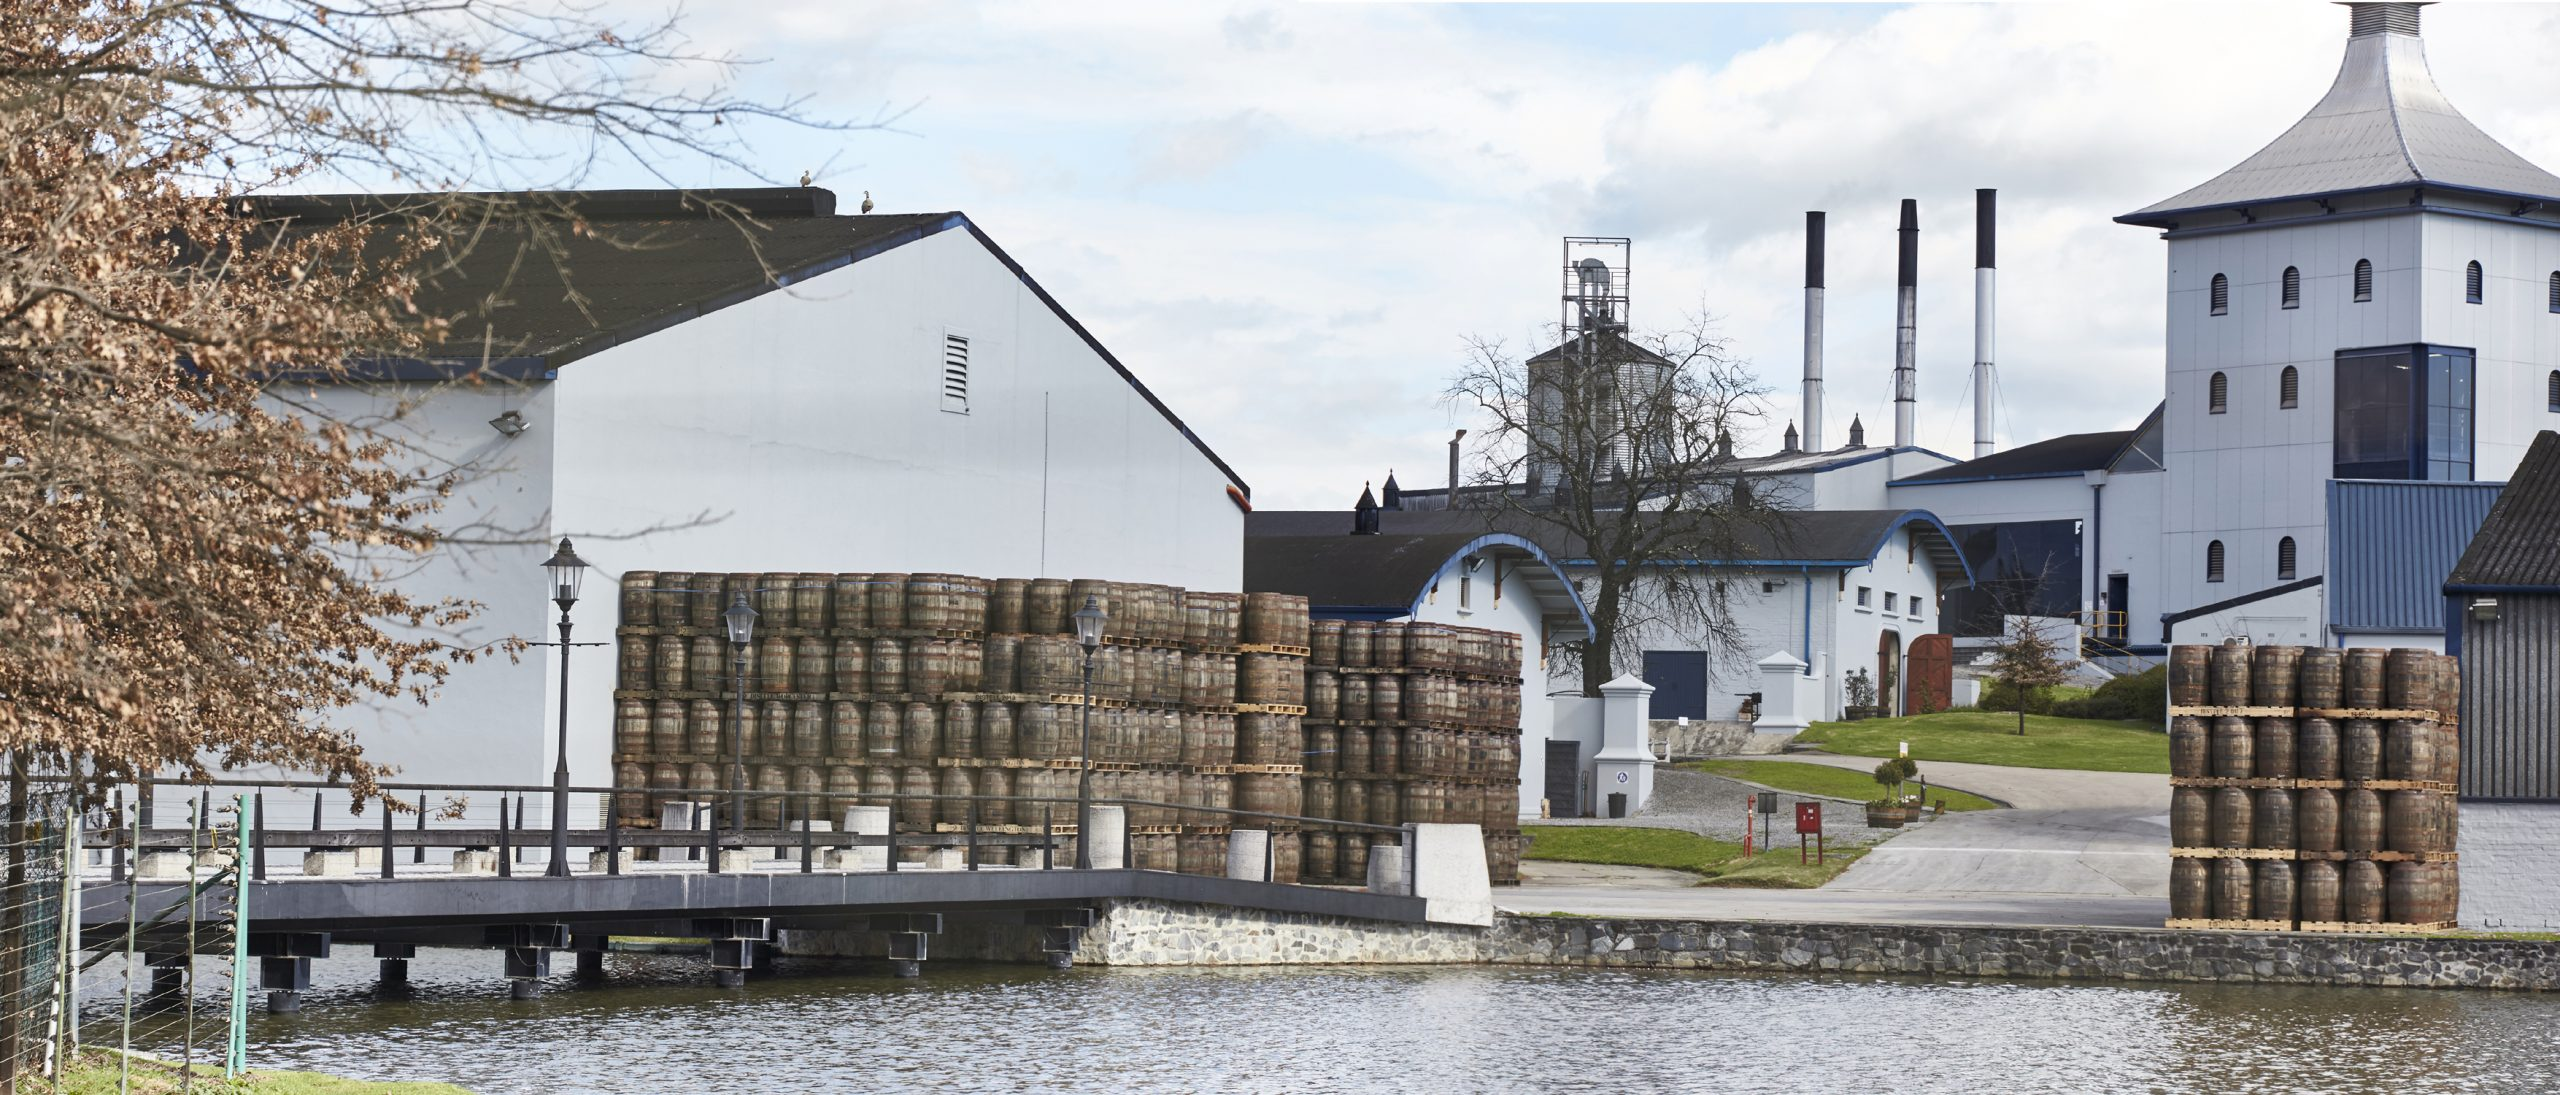 Bain's Whisky Goes Green As The James Sedgwick Distillery Leads The Way In Sustainability photo